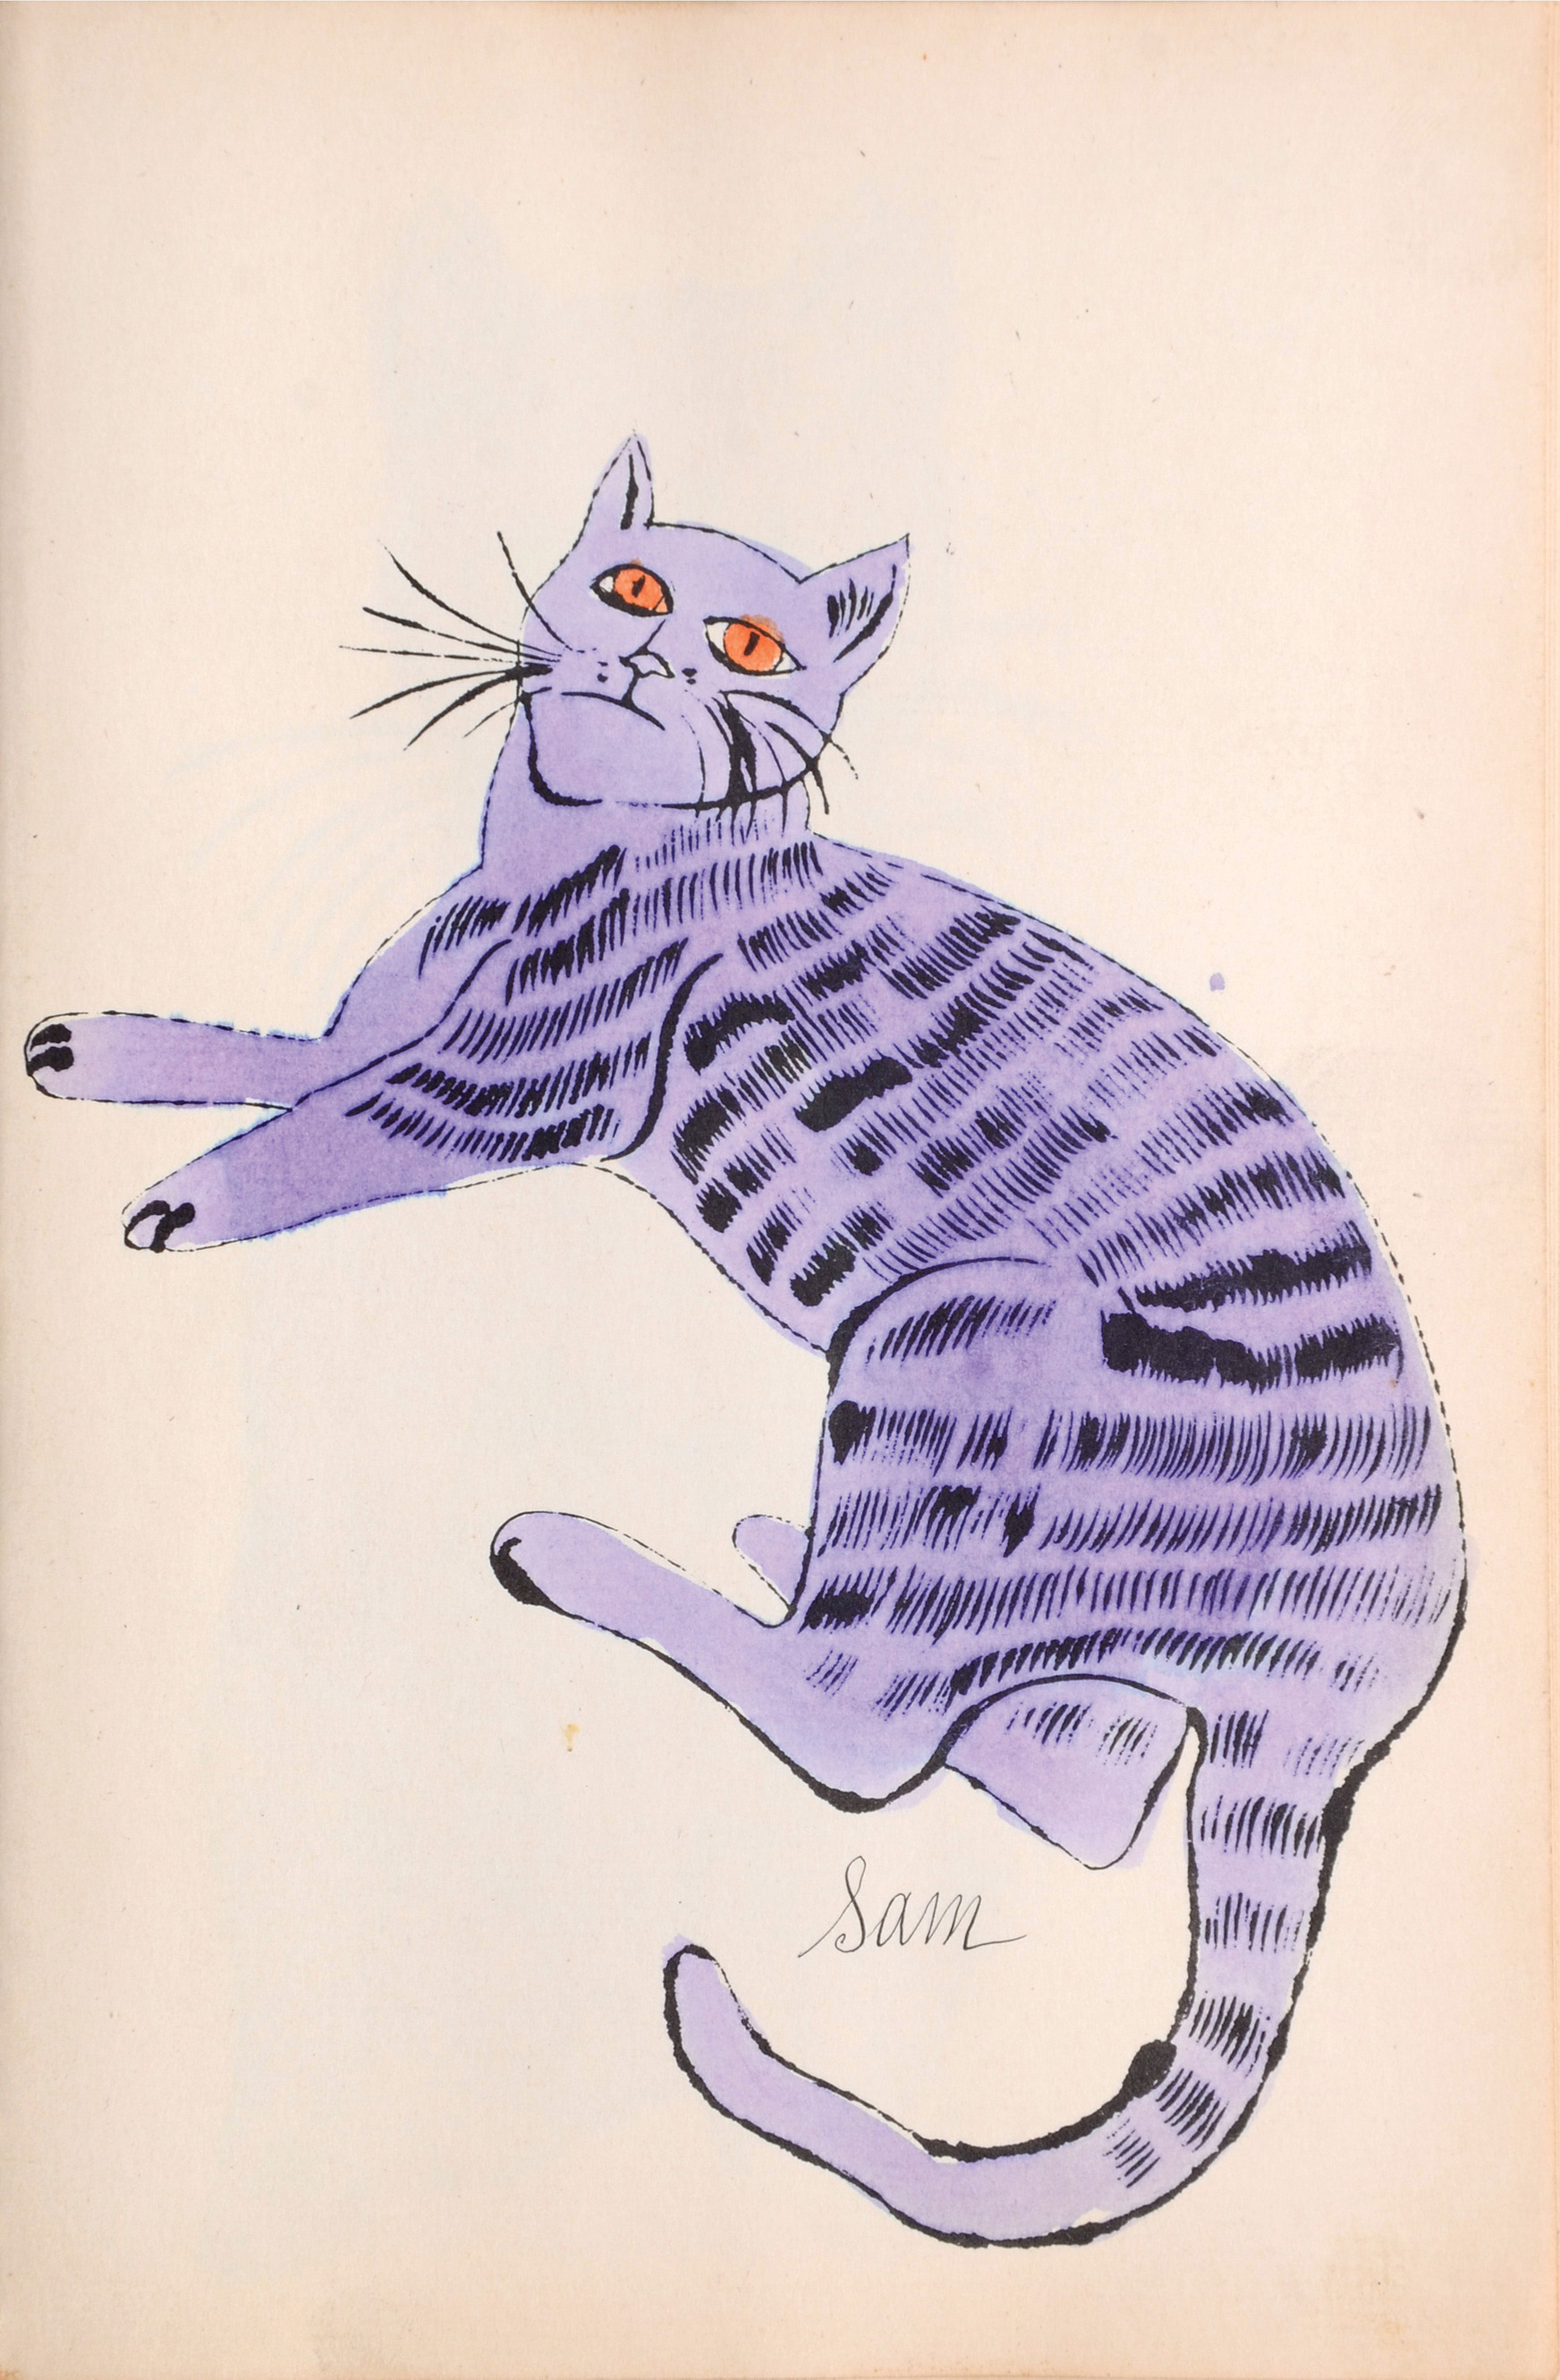 Cats Named Sam IV.52 by Andy Warhol